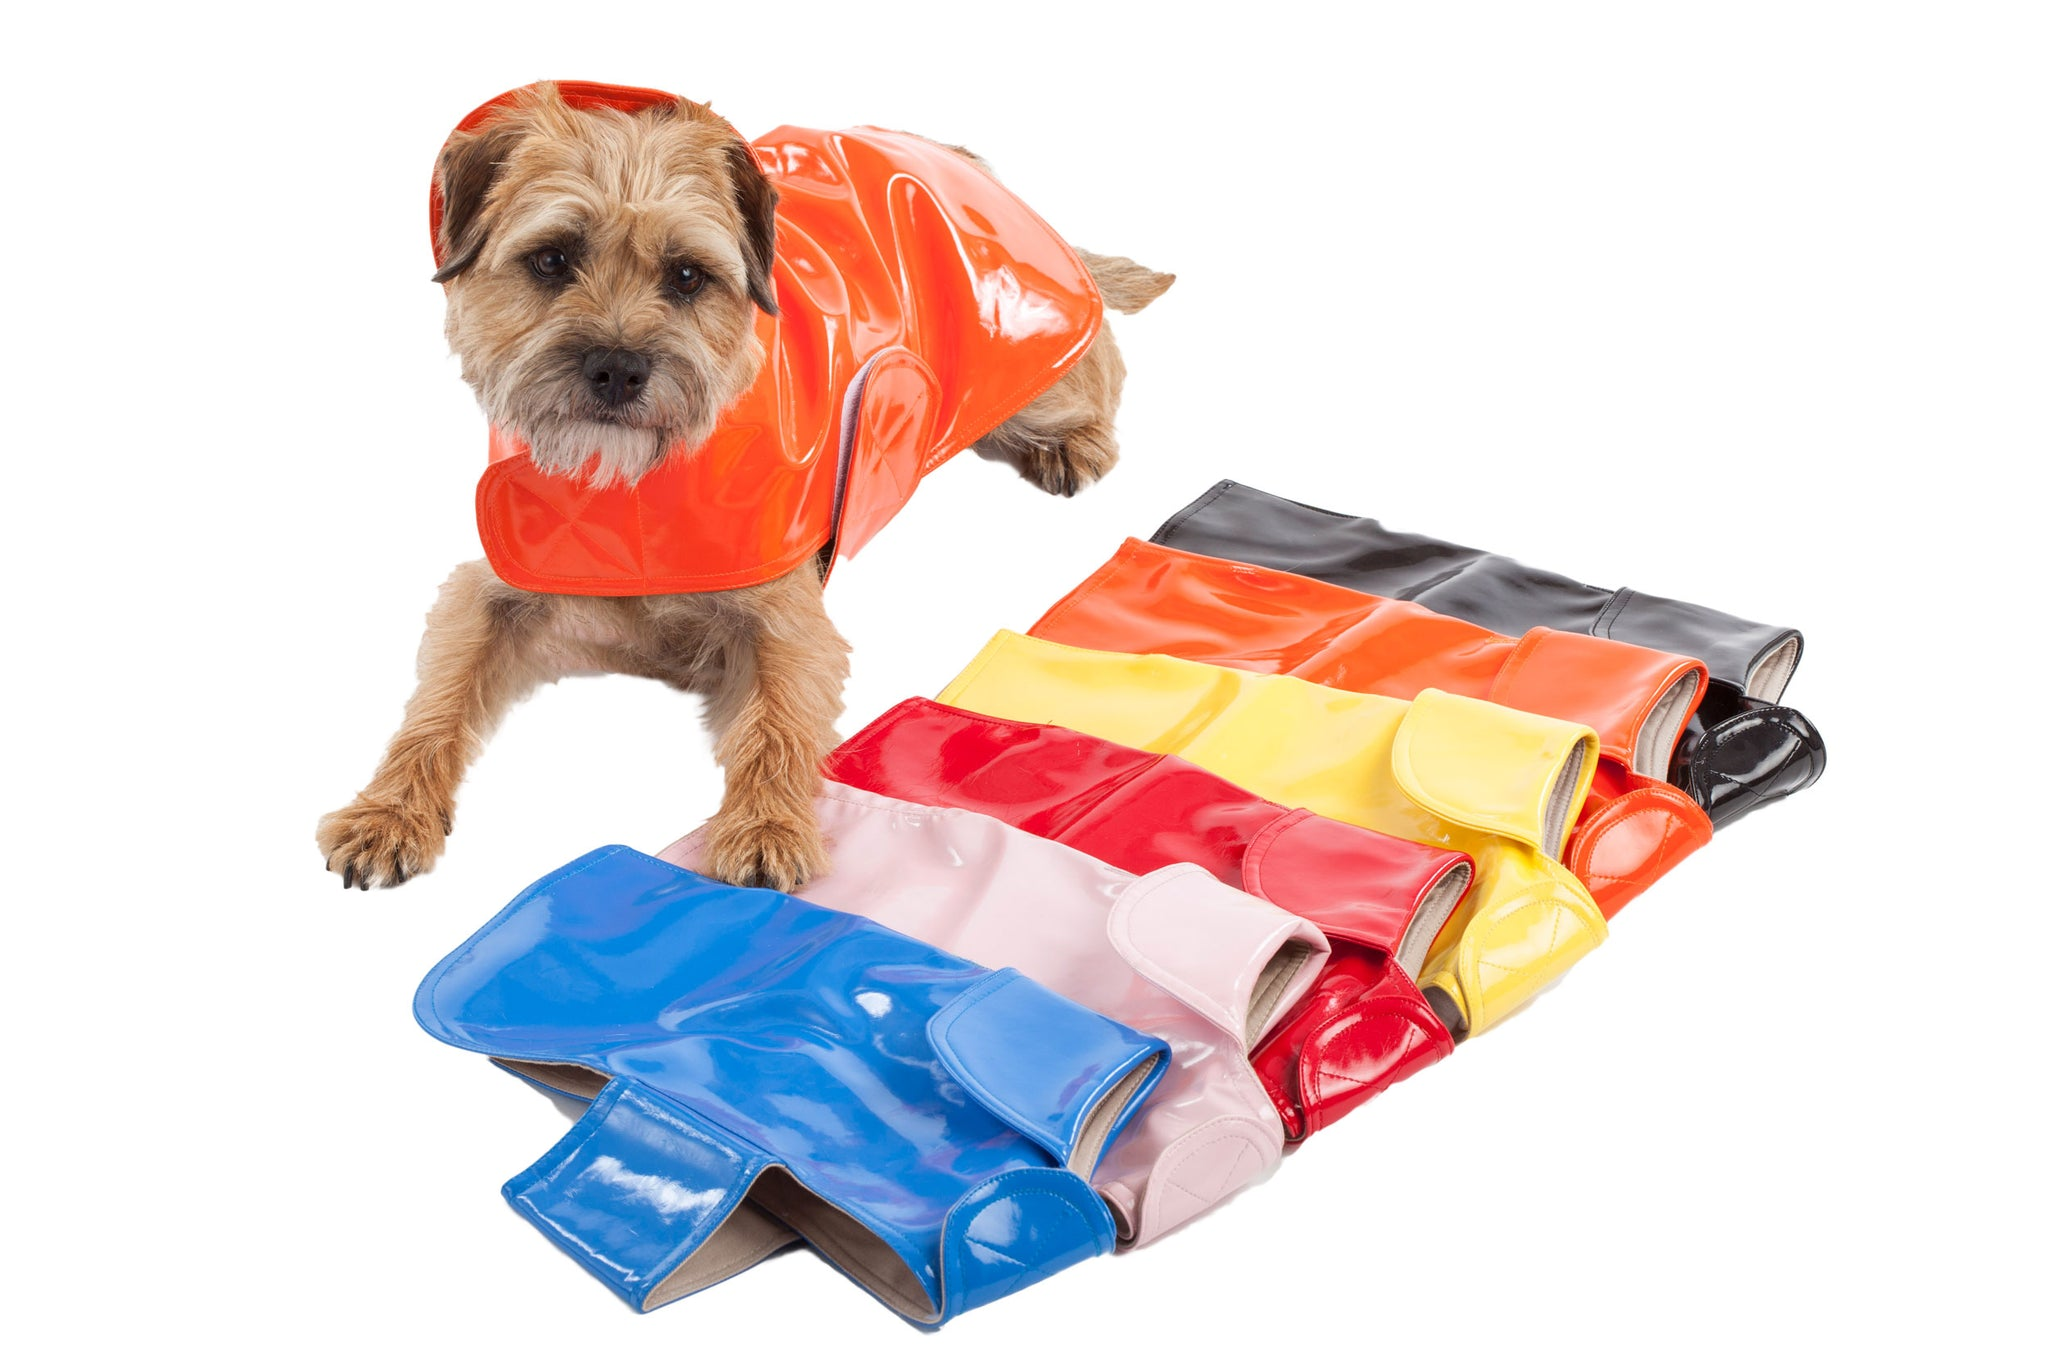 Dog Coat - Slickers, Raincoats, 6 Color Options